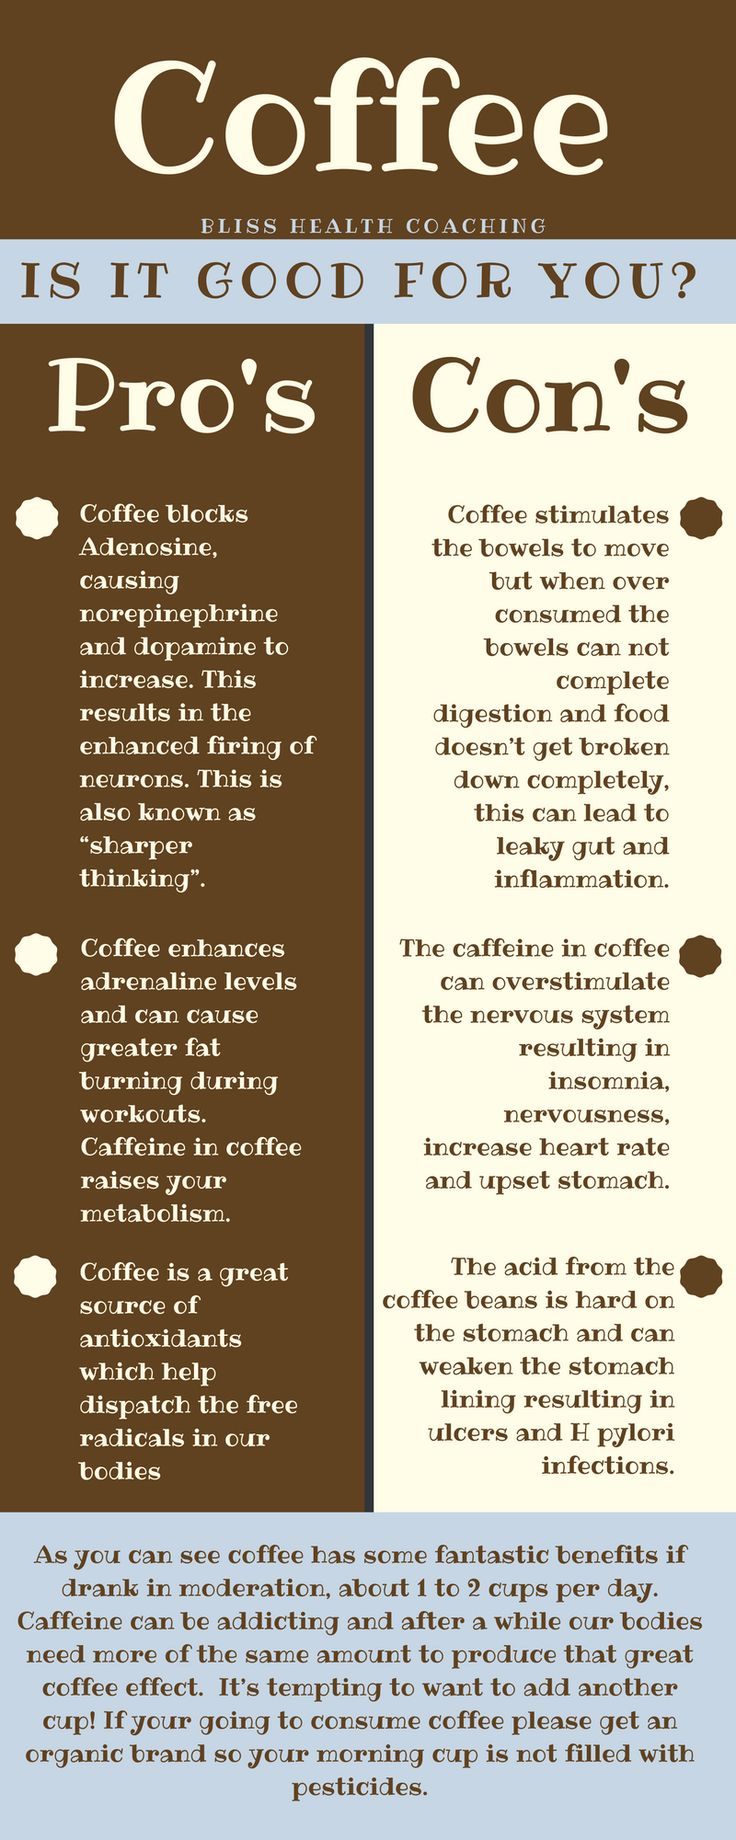 America runs on coffee! Find out how it is effecting your body. #coffeebenefits